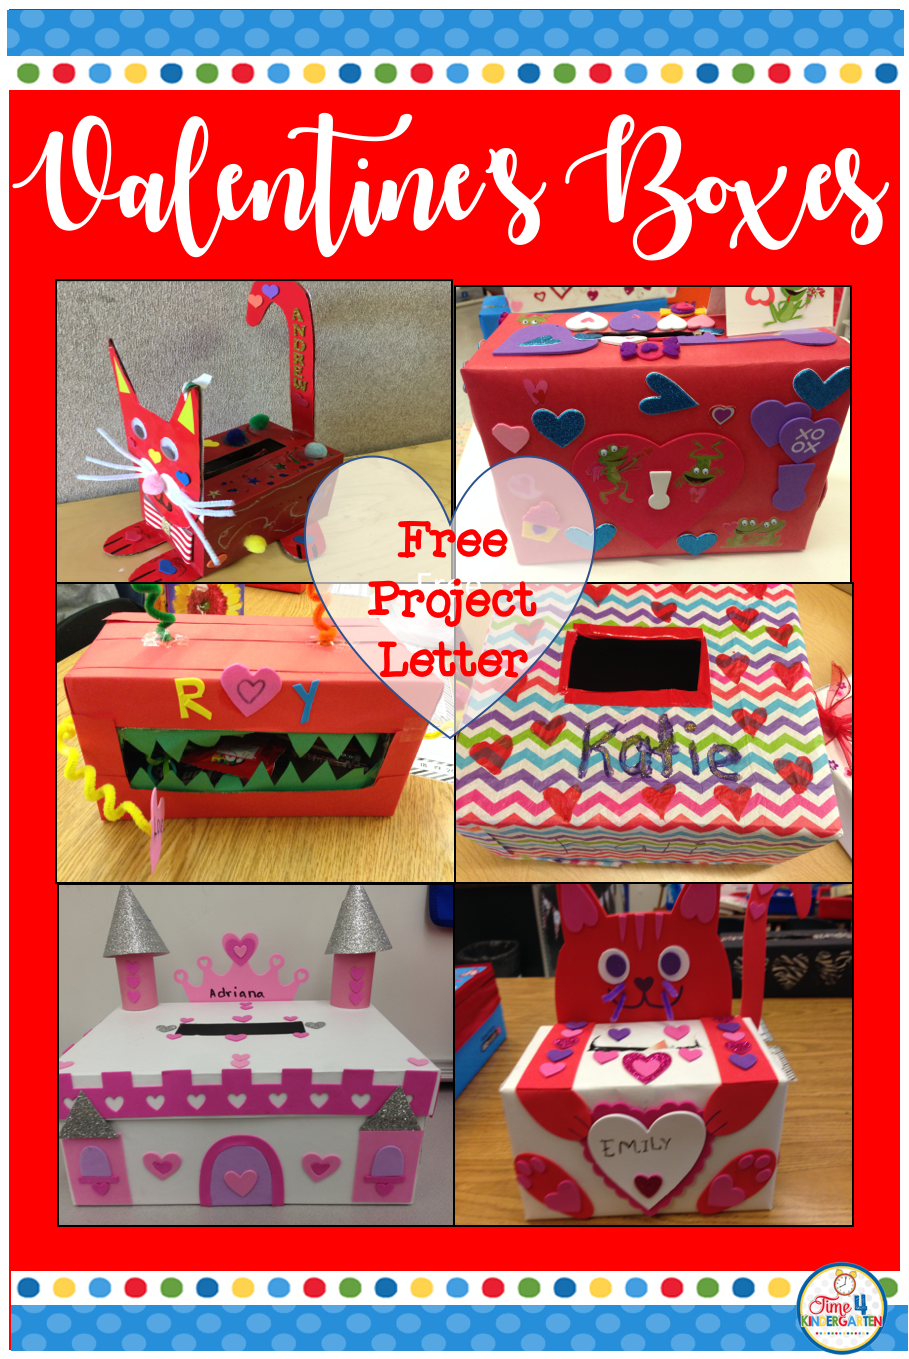 Free Valentines Box Family Project Letter. Have Your Students Create A Fun  Valentines Day Box